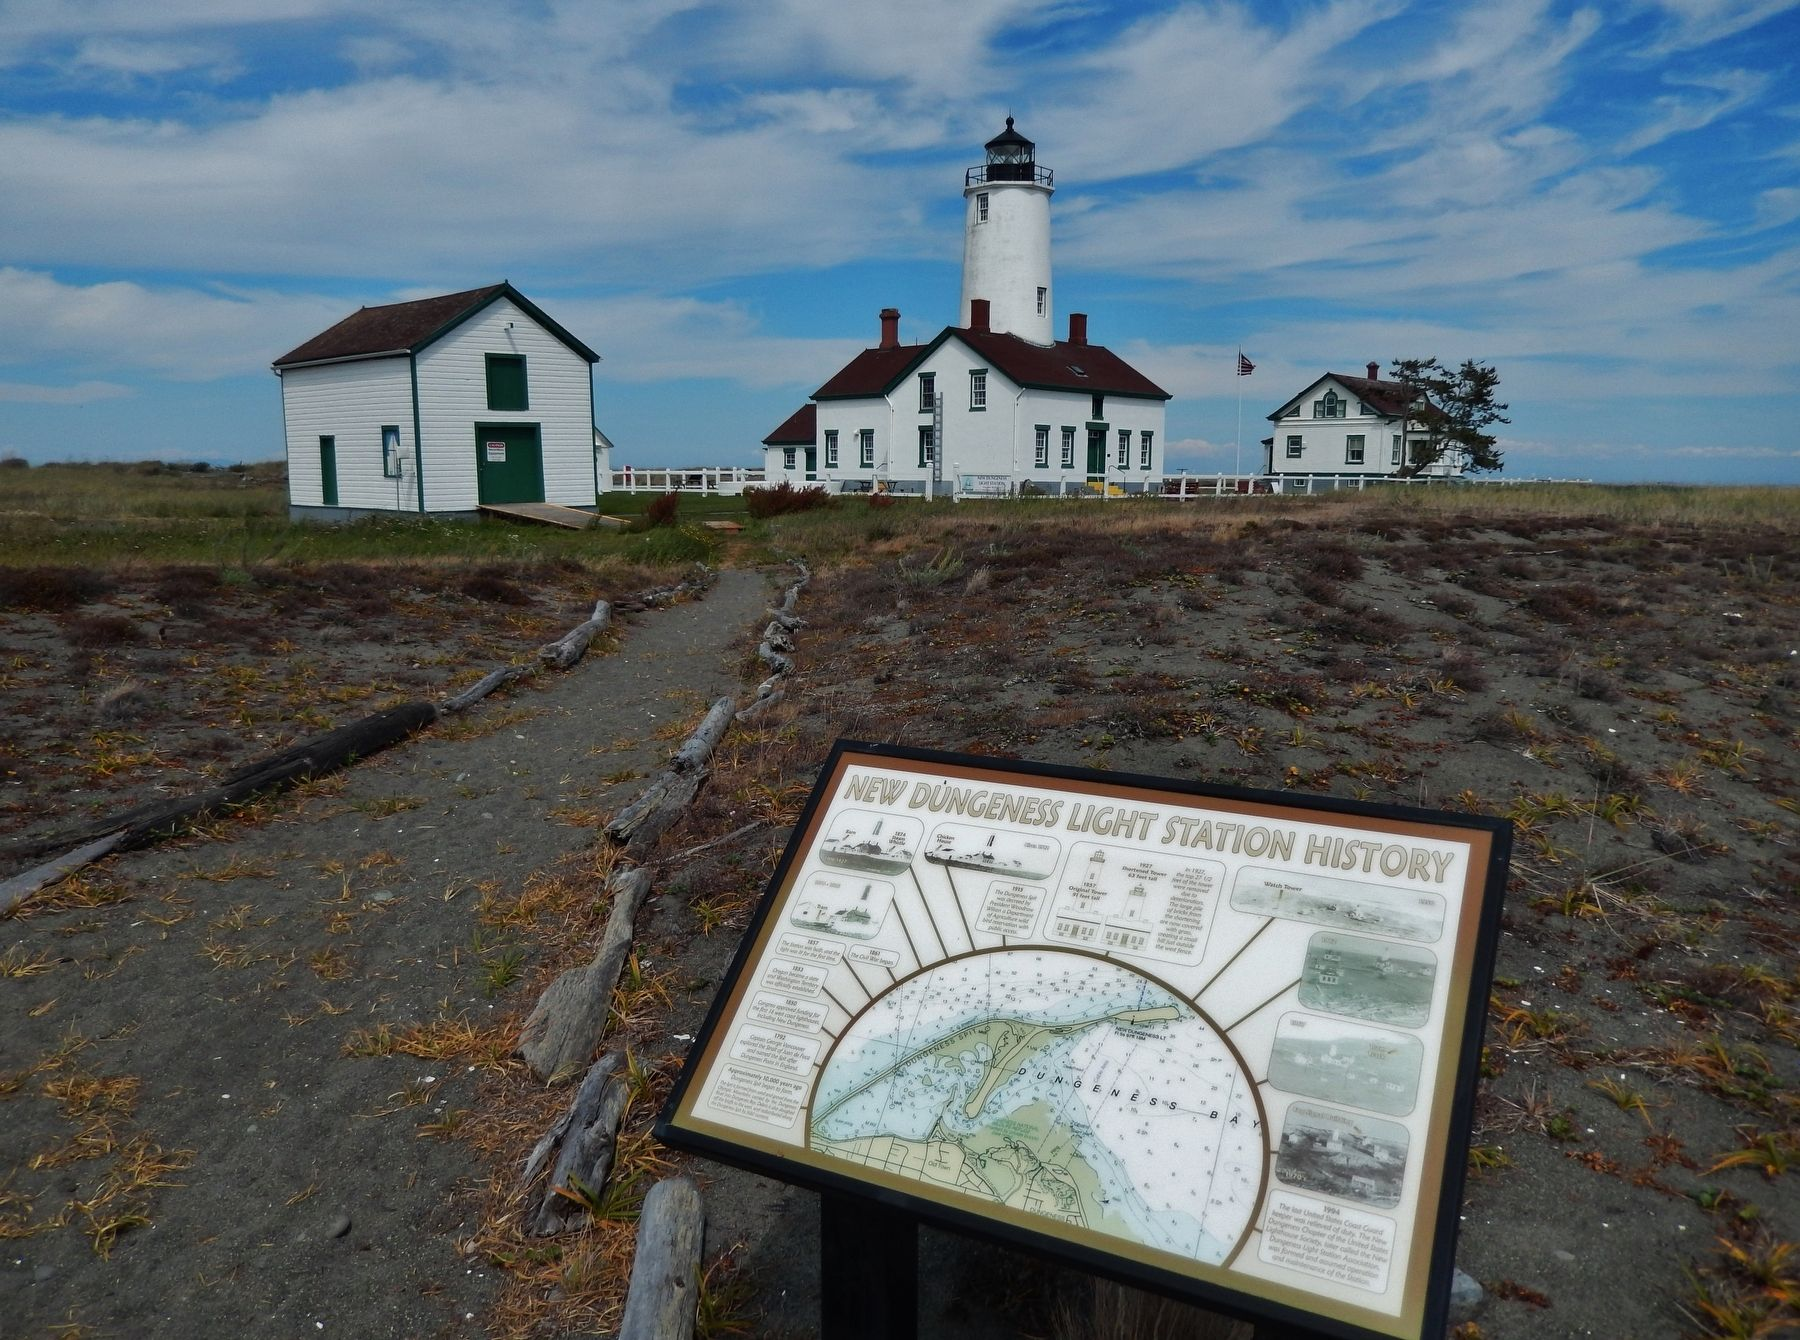 New Dungeness Light Station History Marker (<b><i>wide view</b></i>) image. Click for full size.